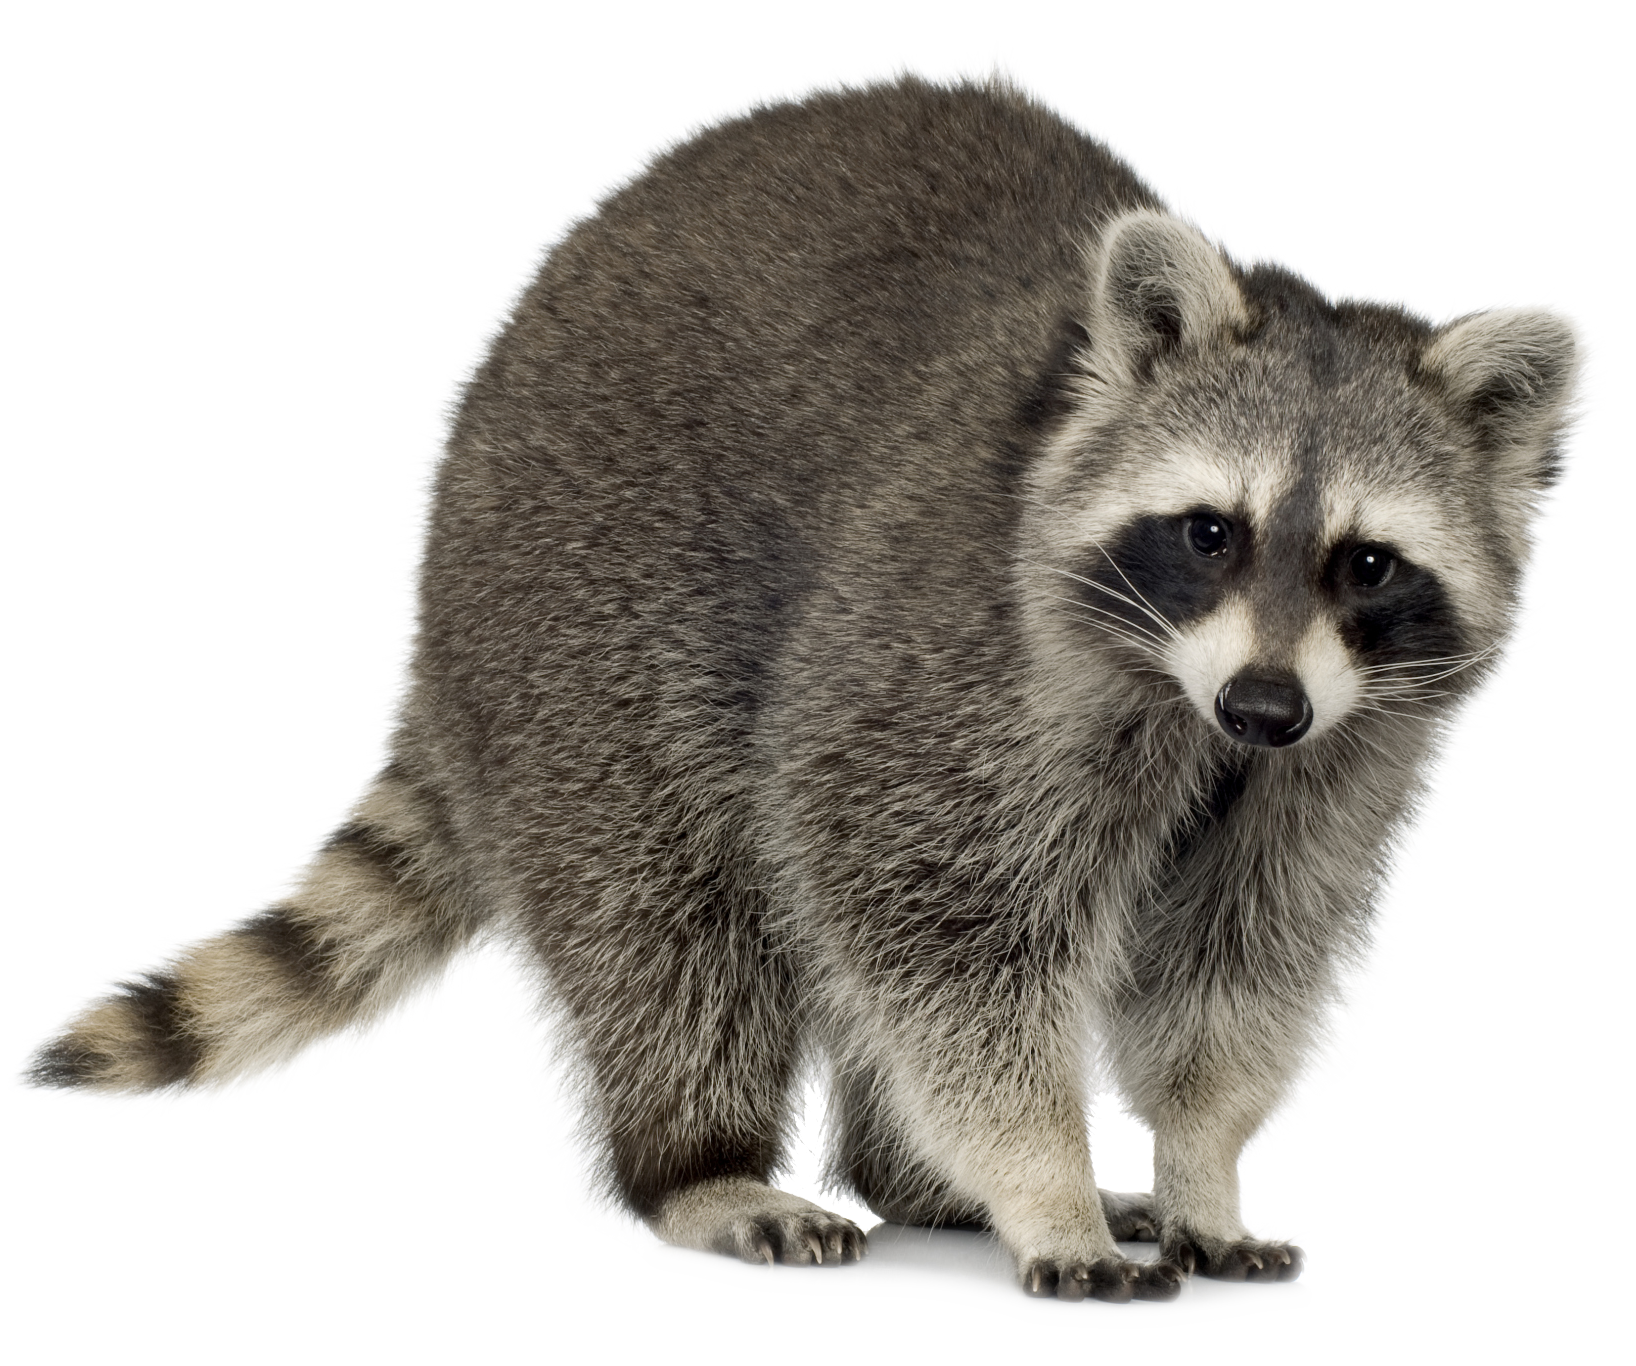 Racoon clipart grey object. Related image pinterest